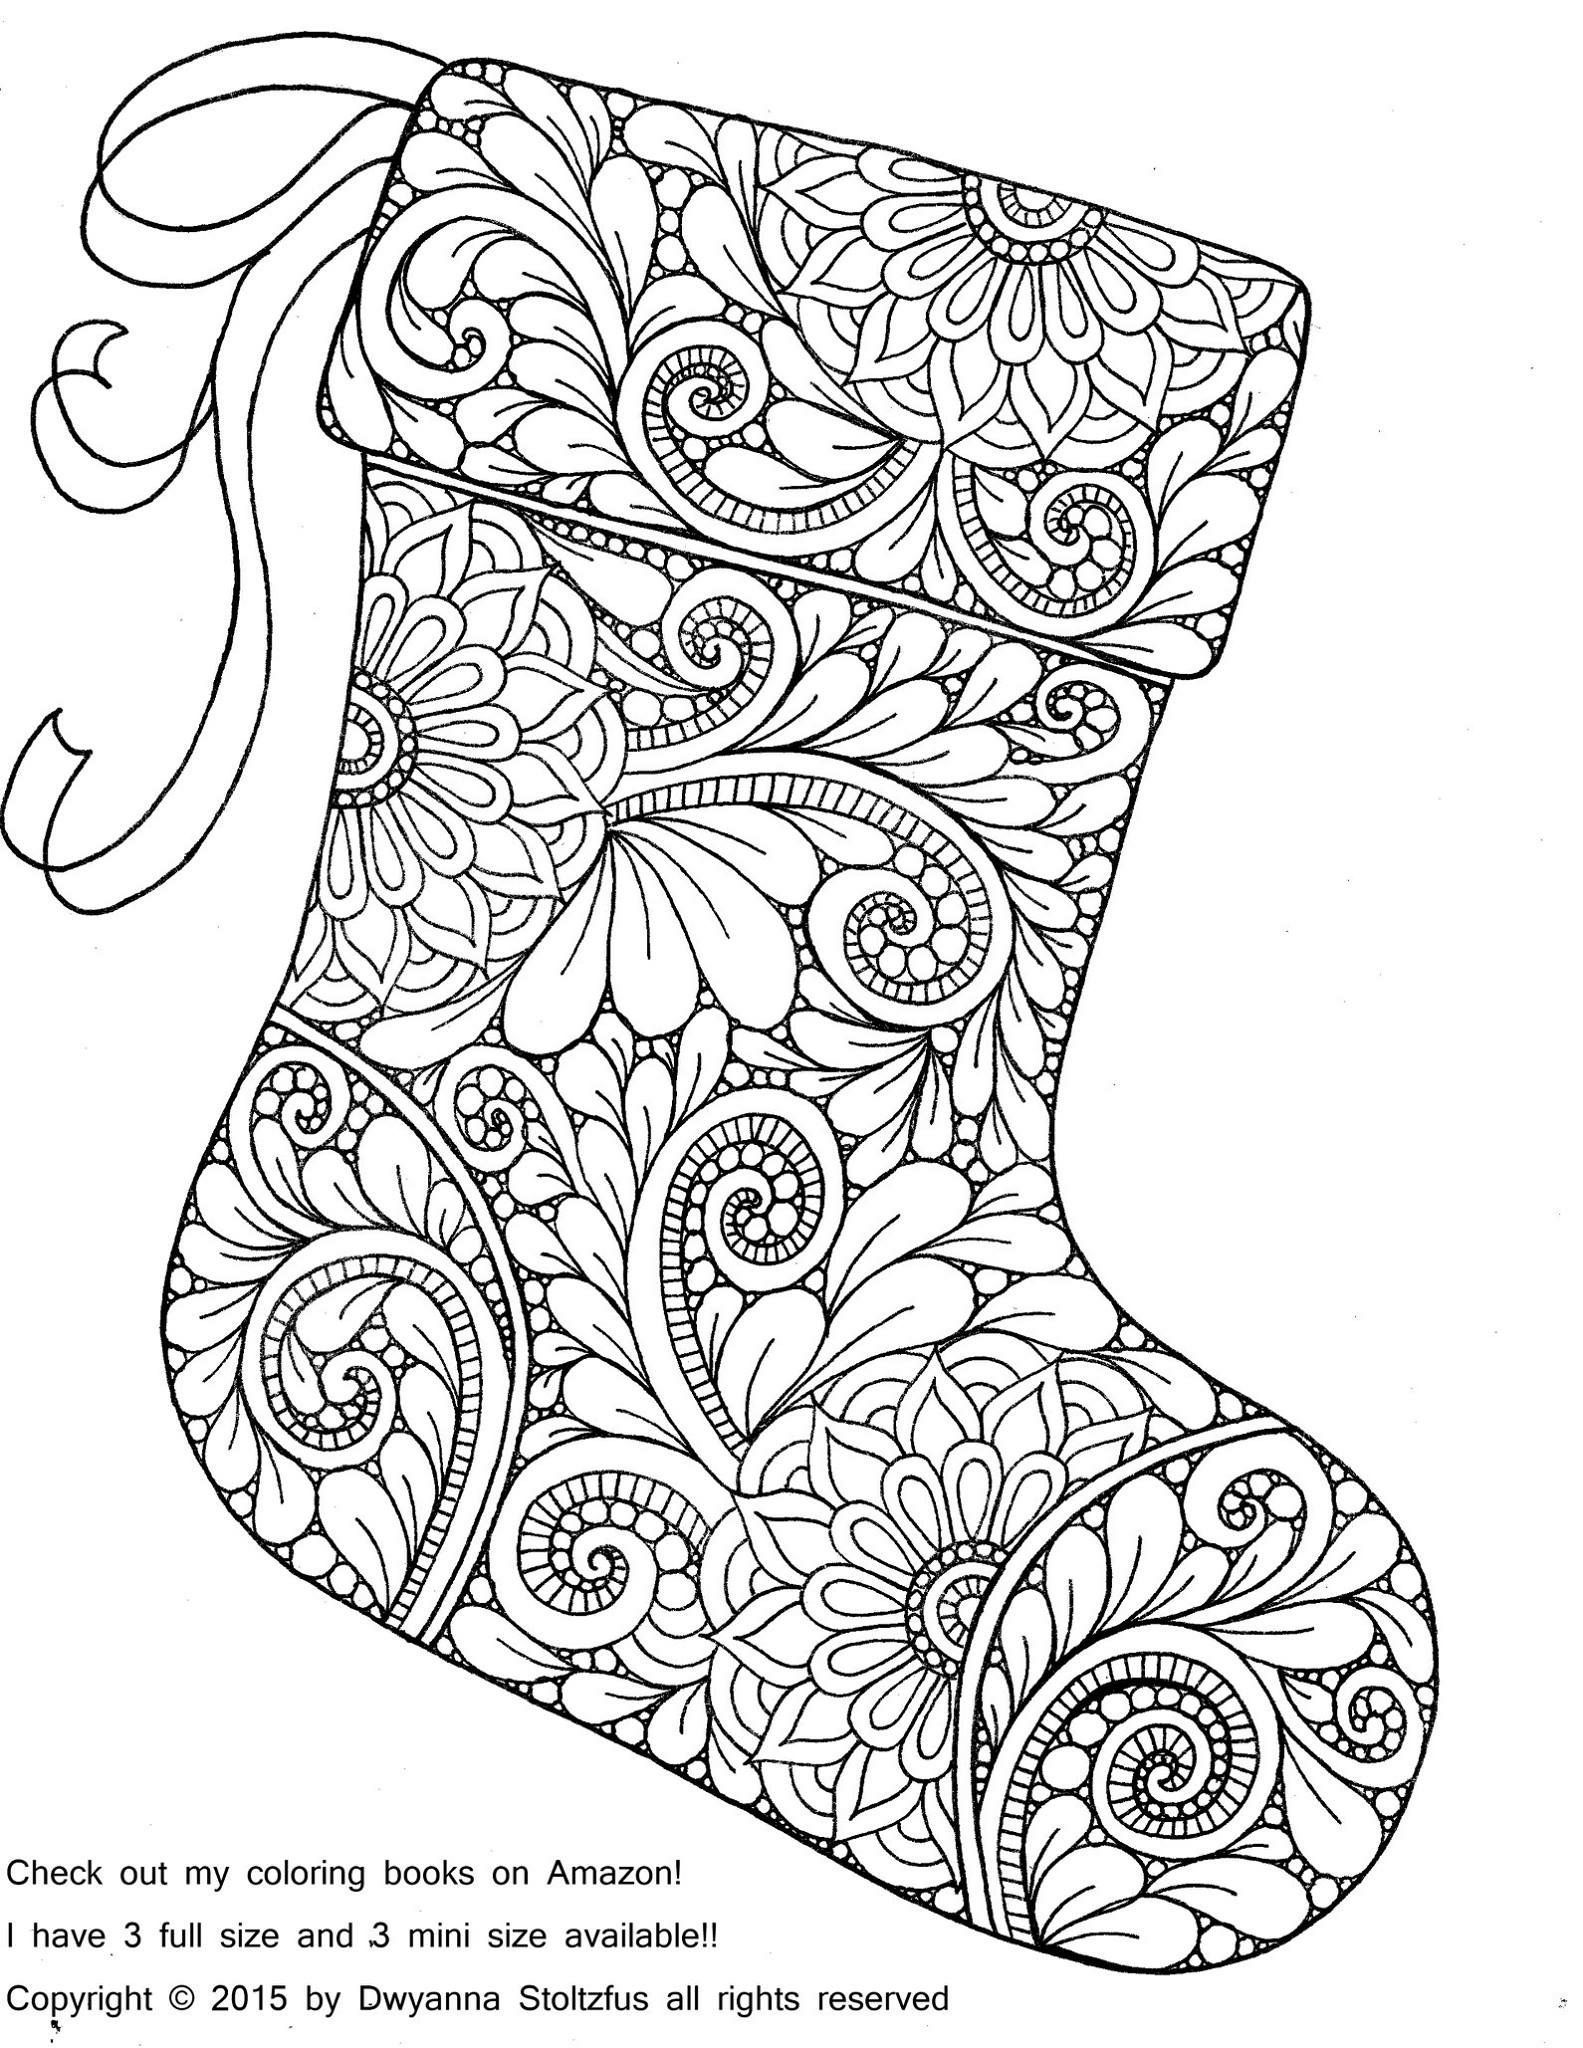 Christmas Coloring Pages For 8 Year Olds In 2020 Christmas Coloring Pages Coloring Pages Christmas Colors